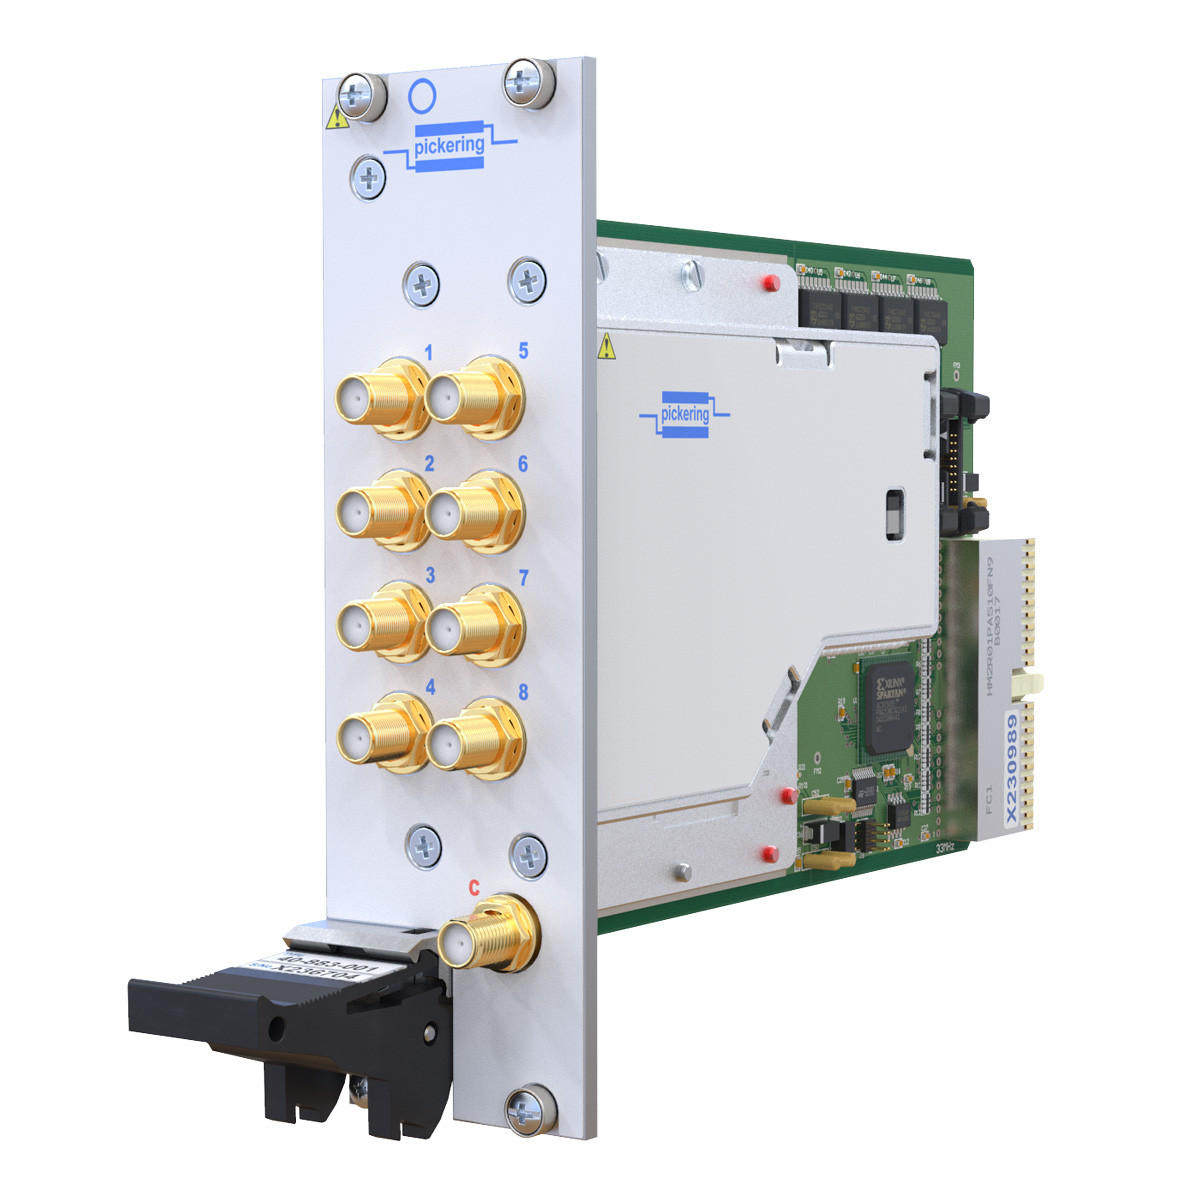 New Modular Switching Simulation Products Pickering Interfaces Sensitive Interconnect Driver Circuit Electronic Design Updated Range Of Pxi Solid State Rf Switches With 8ghz Frequency Handling October 2018